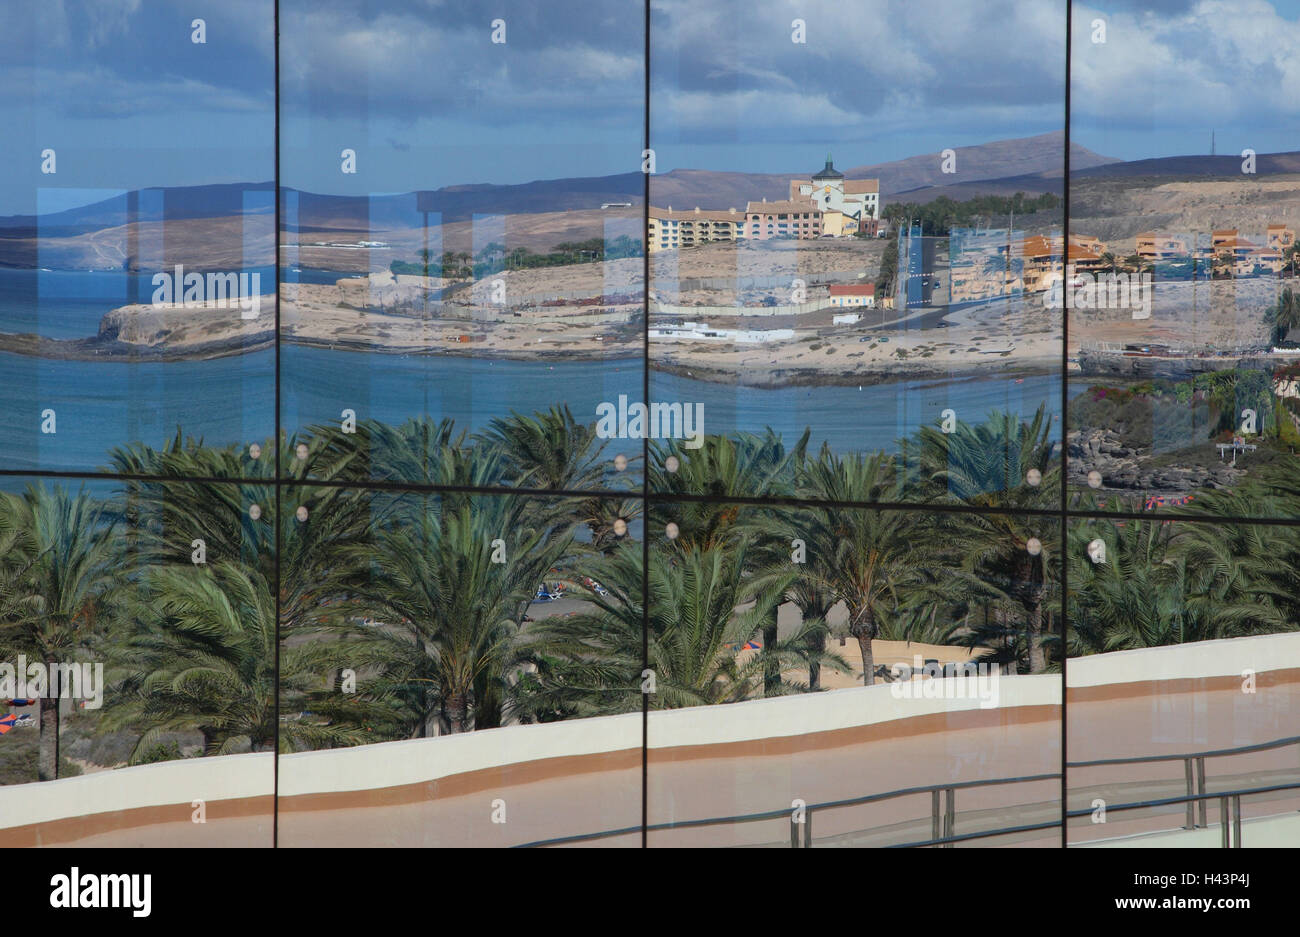 Mirroring in of a glass wall on Fuerteventura, - Stock Image